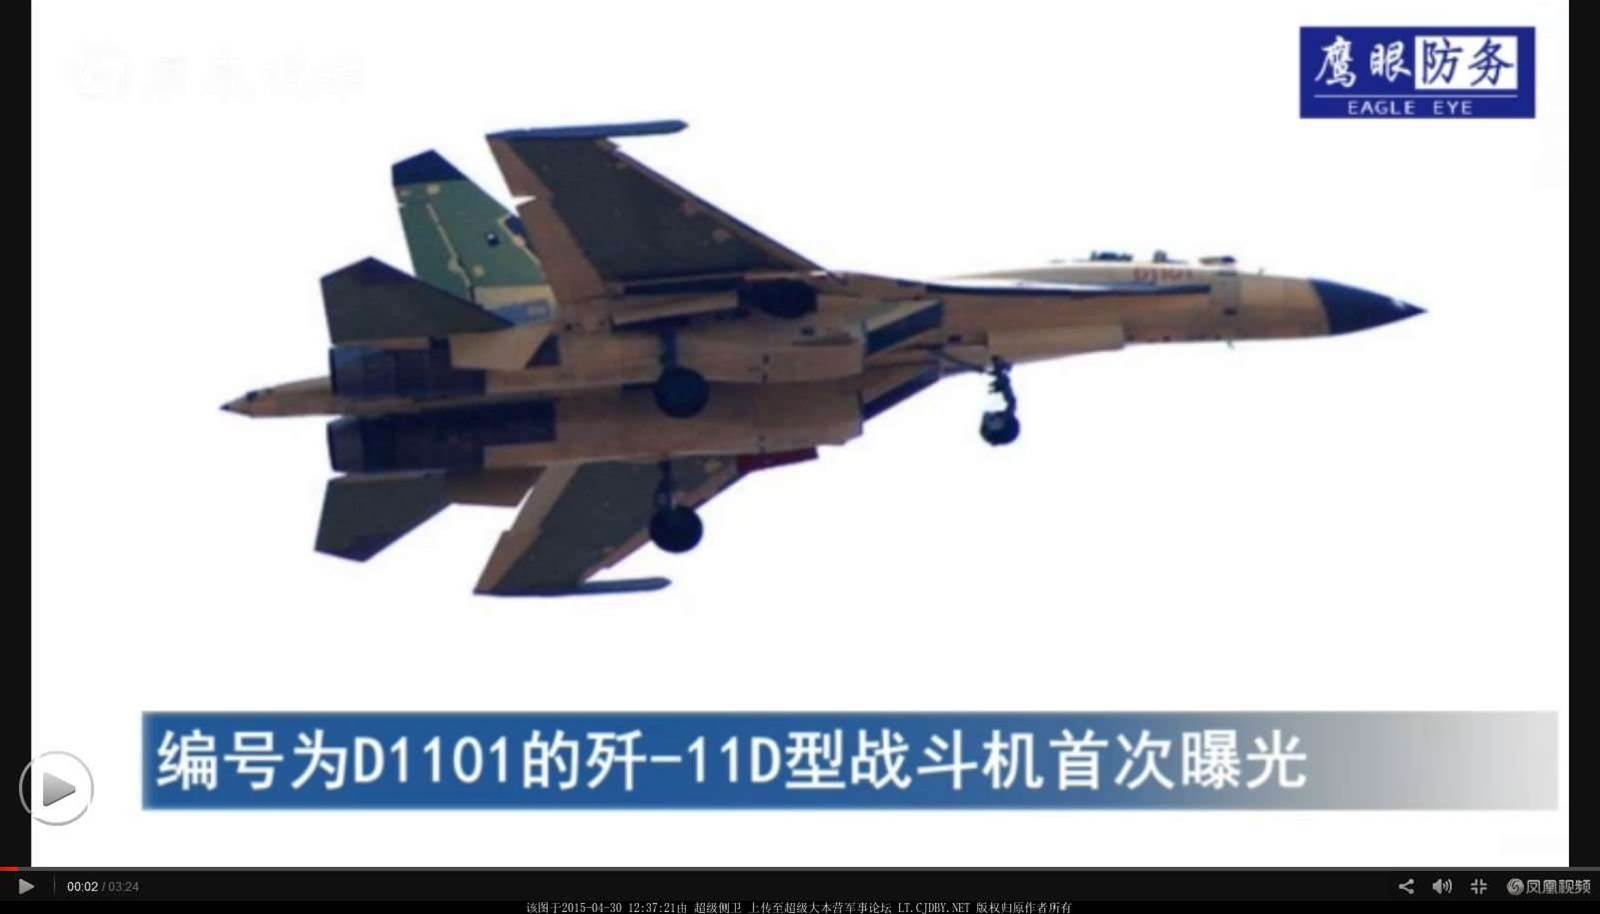 The J-11D Surprise: China Upgrades Russian Flanker Fighters On Its Own